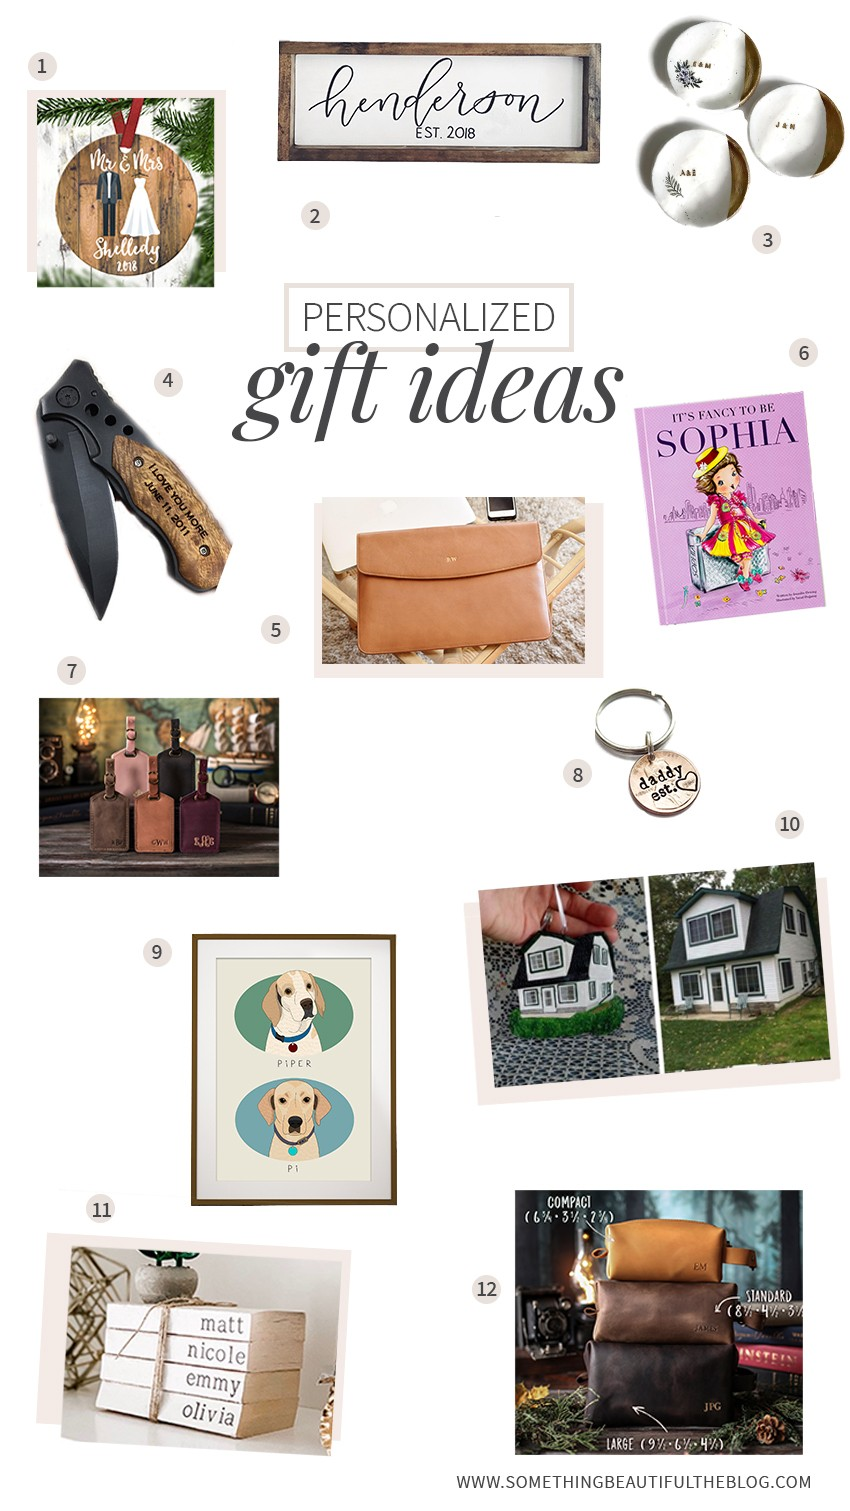 Small Business Saturday Personalized Gift Ideas Daryl Ann